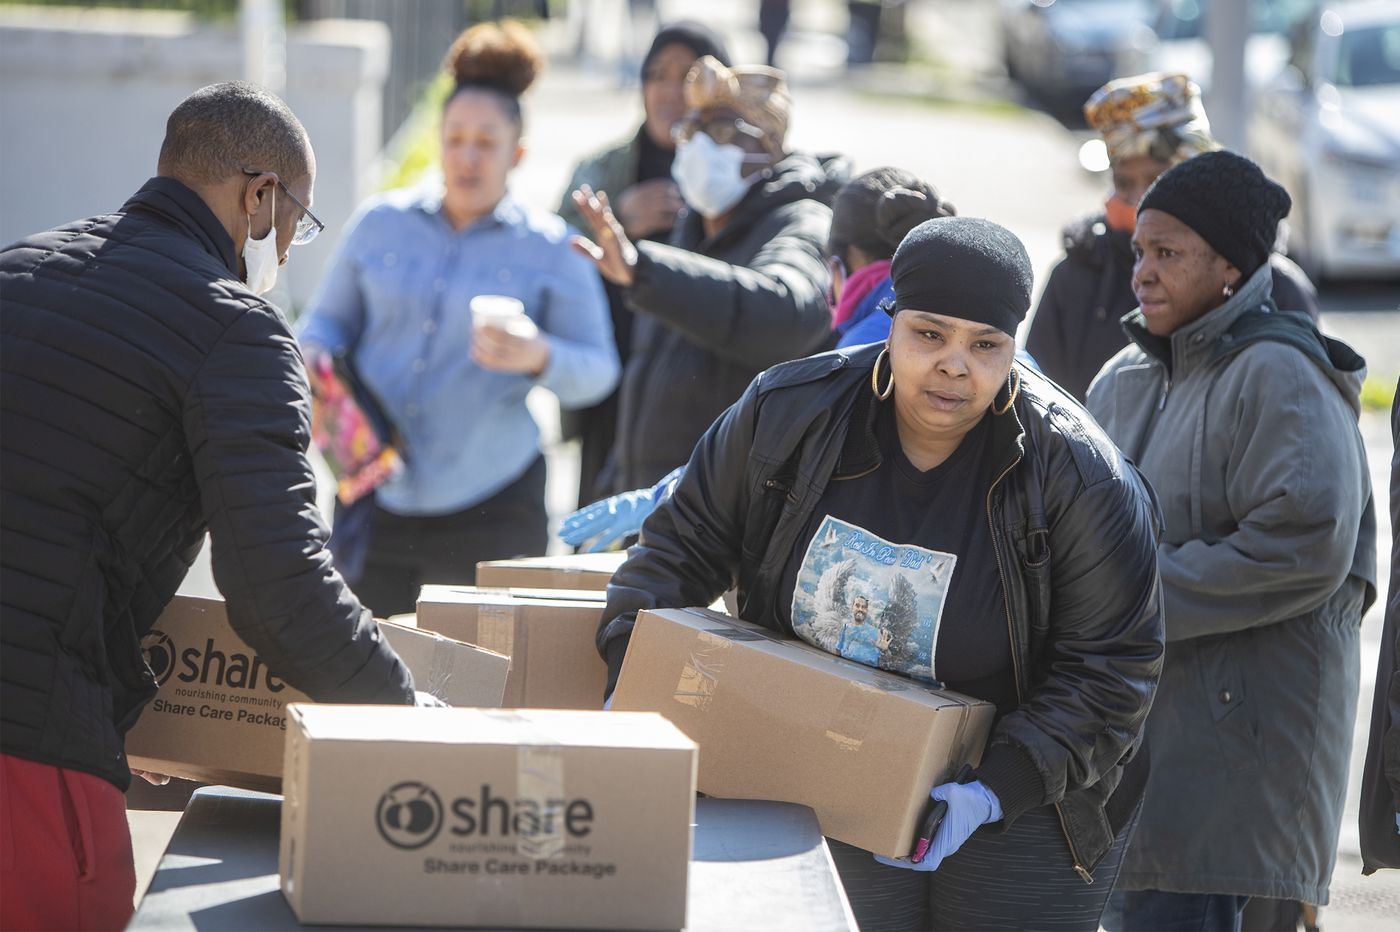 Nearly $1.4 billion needed in extra resources to feed the hungry nationwide over the next 6 months, agency says